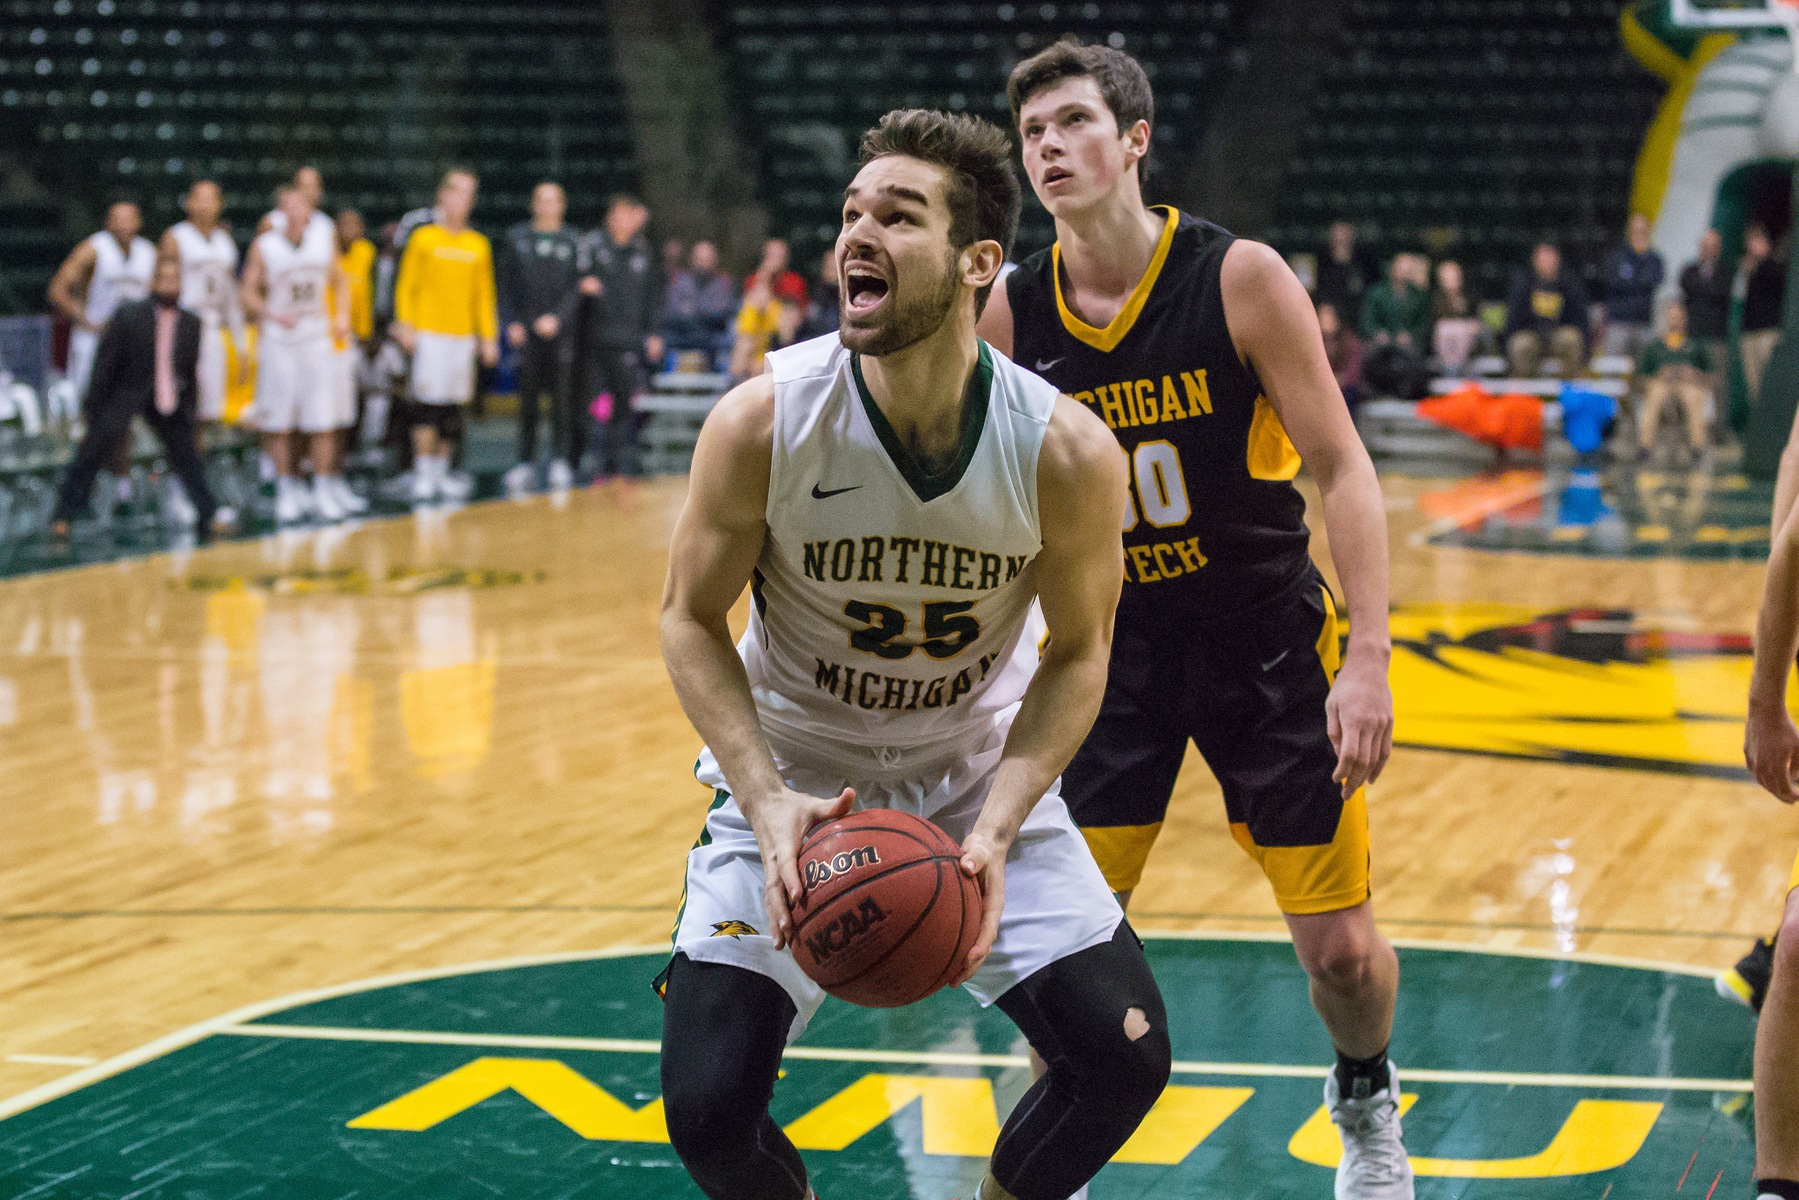 NMU Falls to UMD in Final Game of 2017